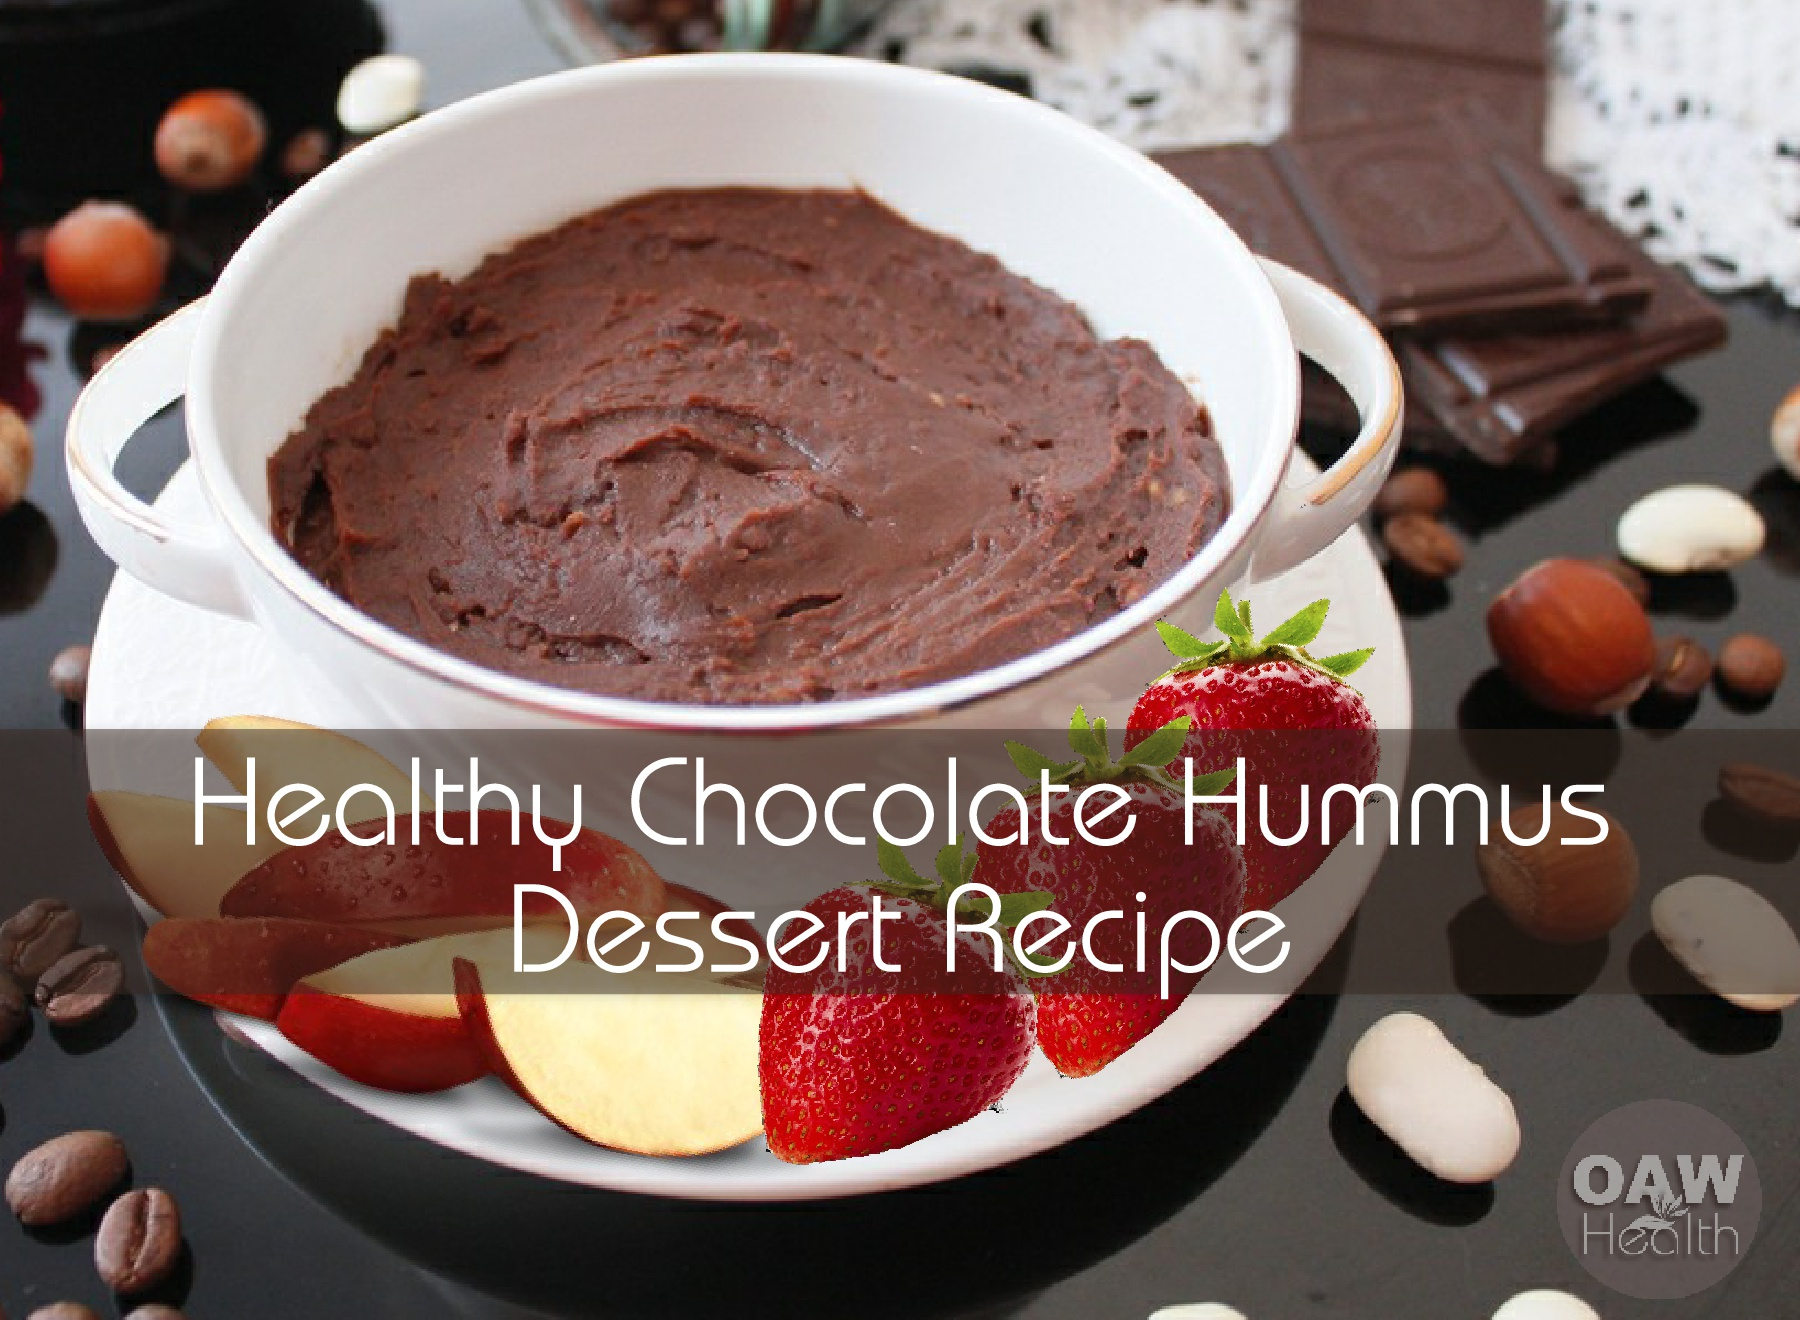 Healthy Chocolate Hummus Dessert Recipe